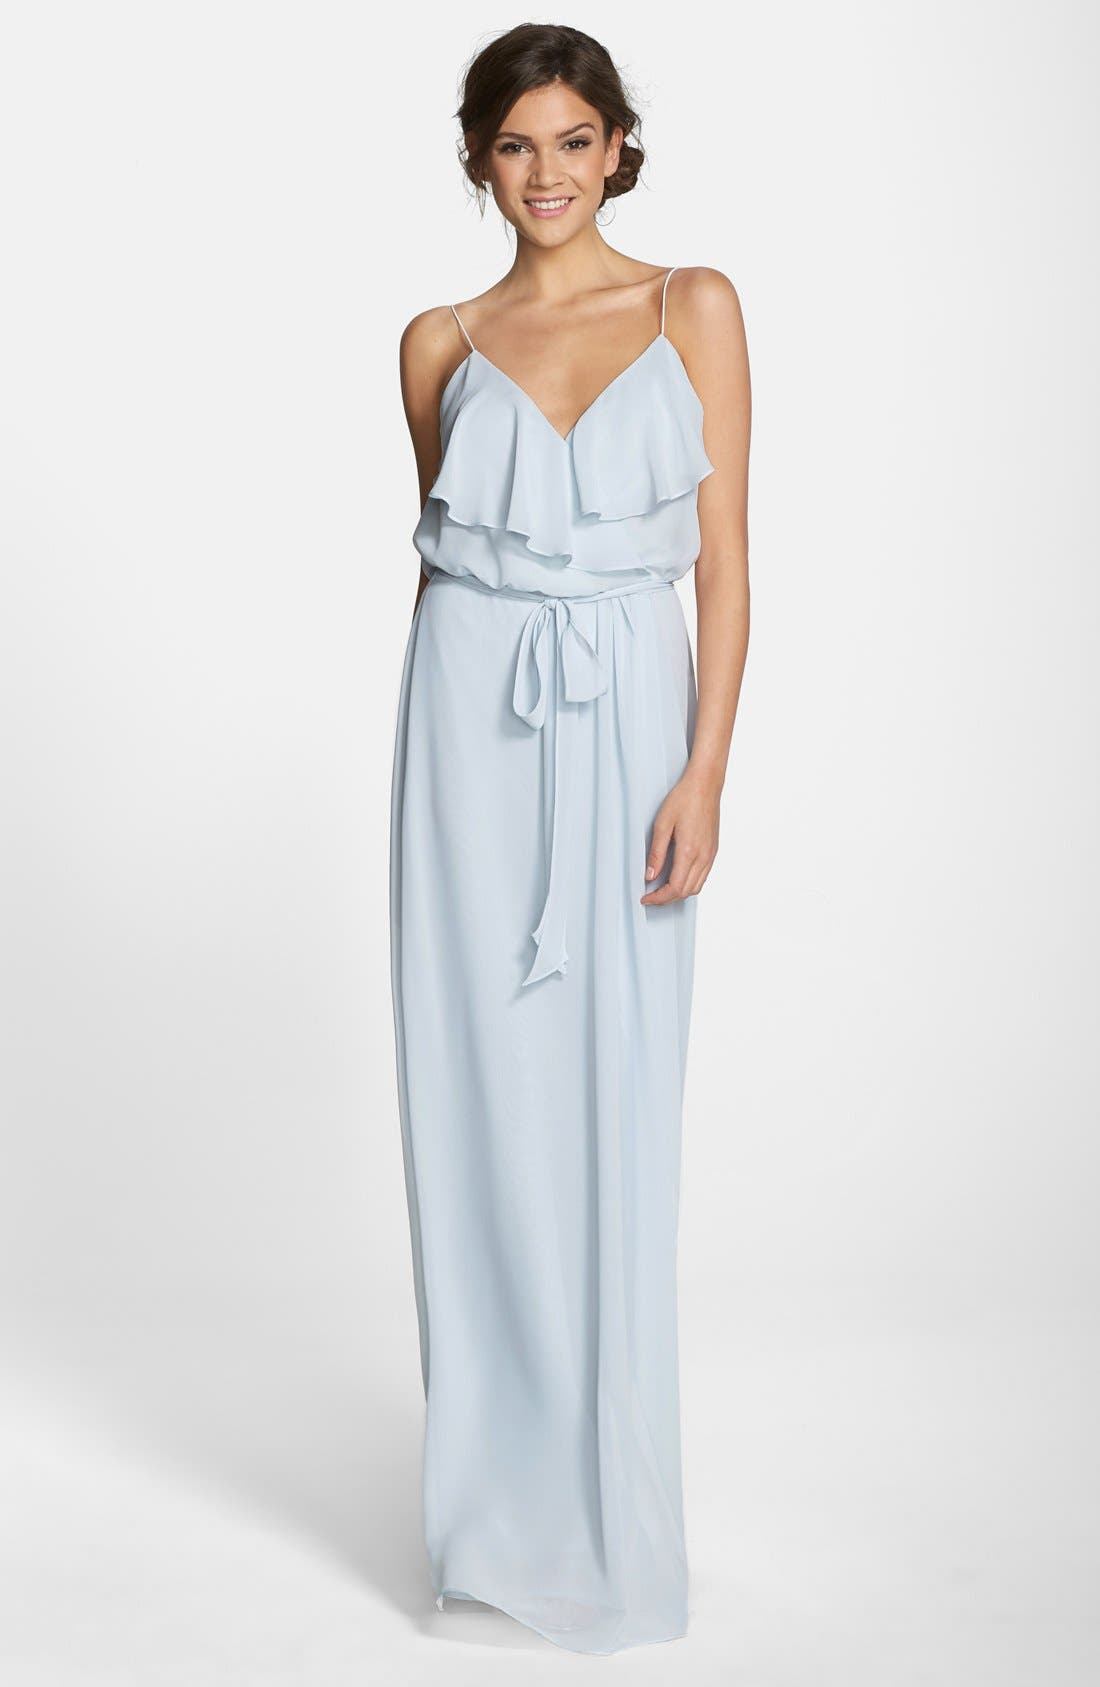 'Drew' Ruffle Front Chiffon Gown,                             Main thumbnail 1, color,